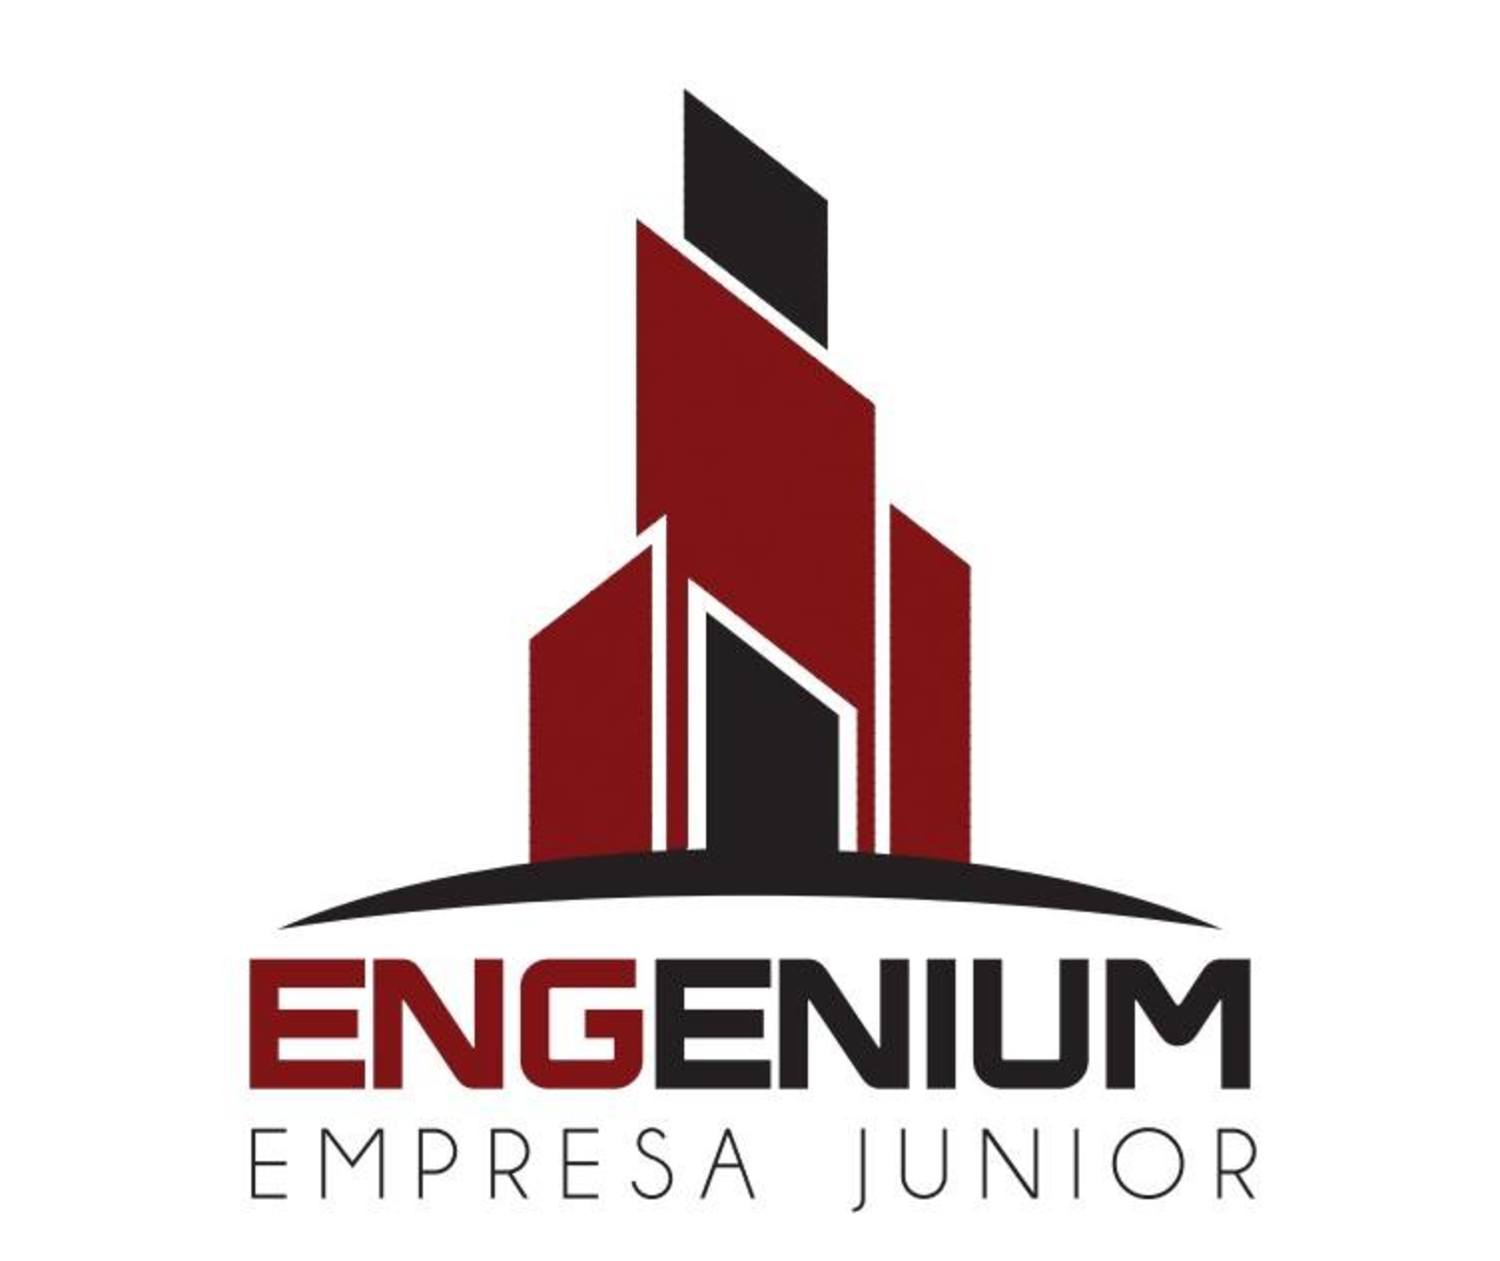 Engenium - Empresa Junior